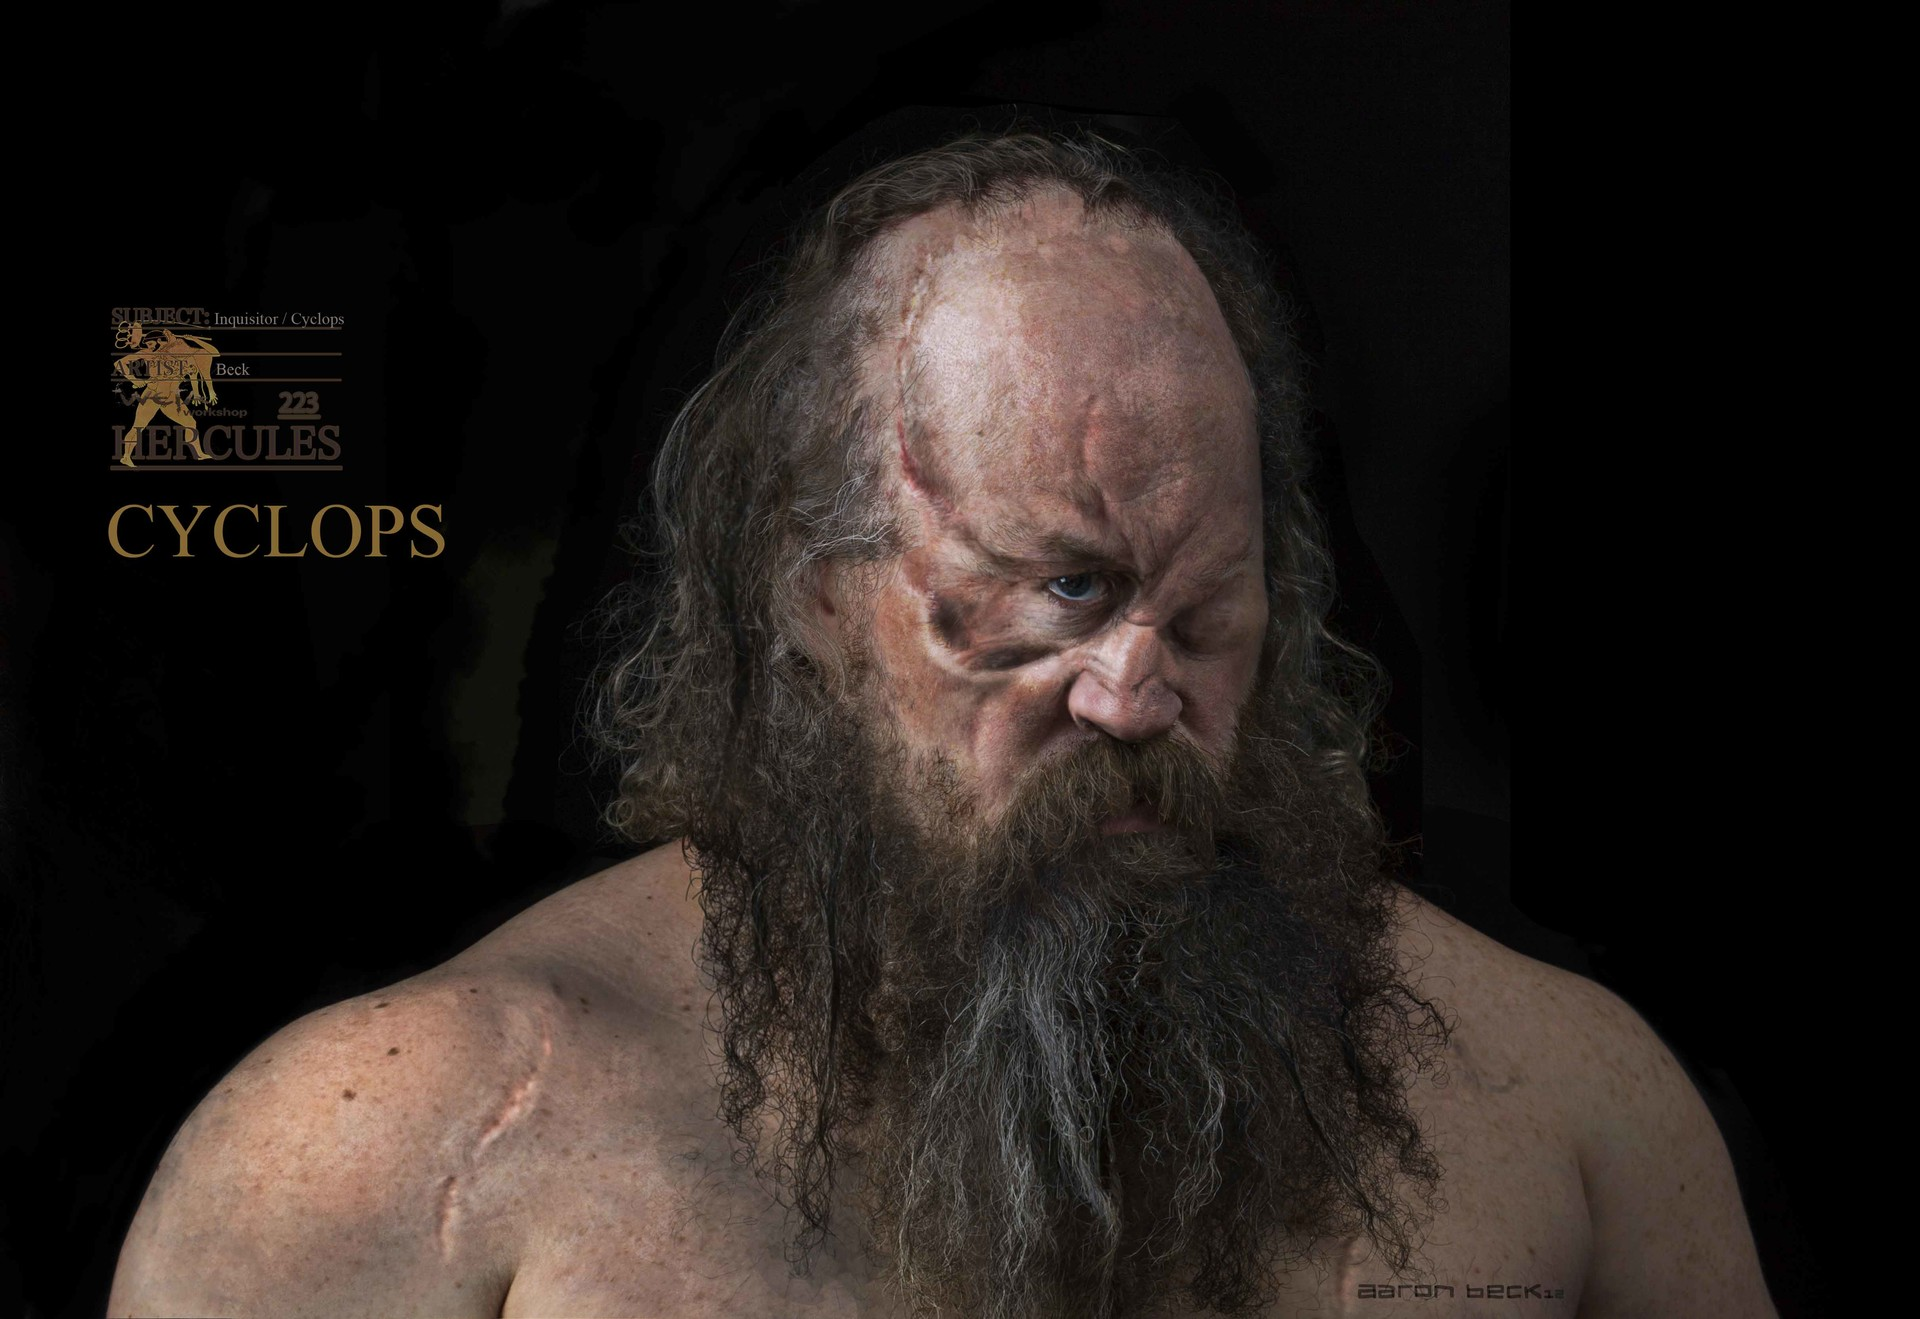 Weta workshop design studio 223cyclops photoedit 01 ab